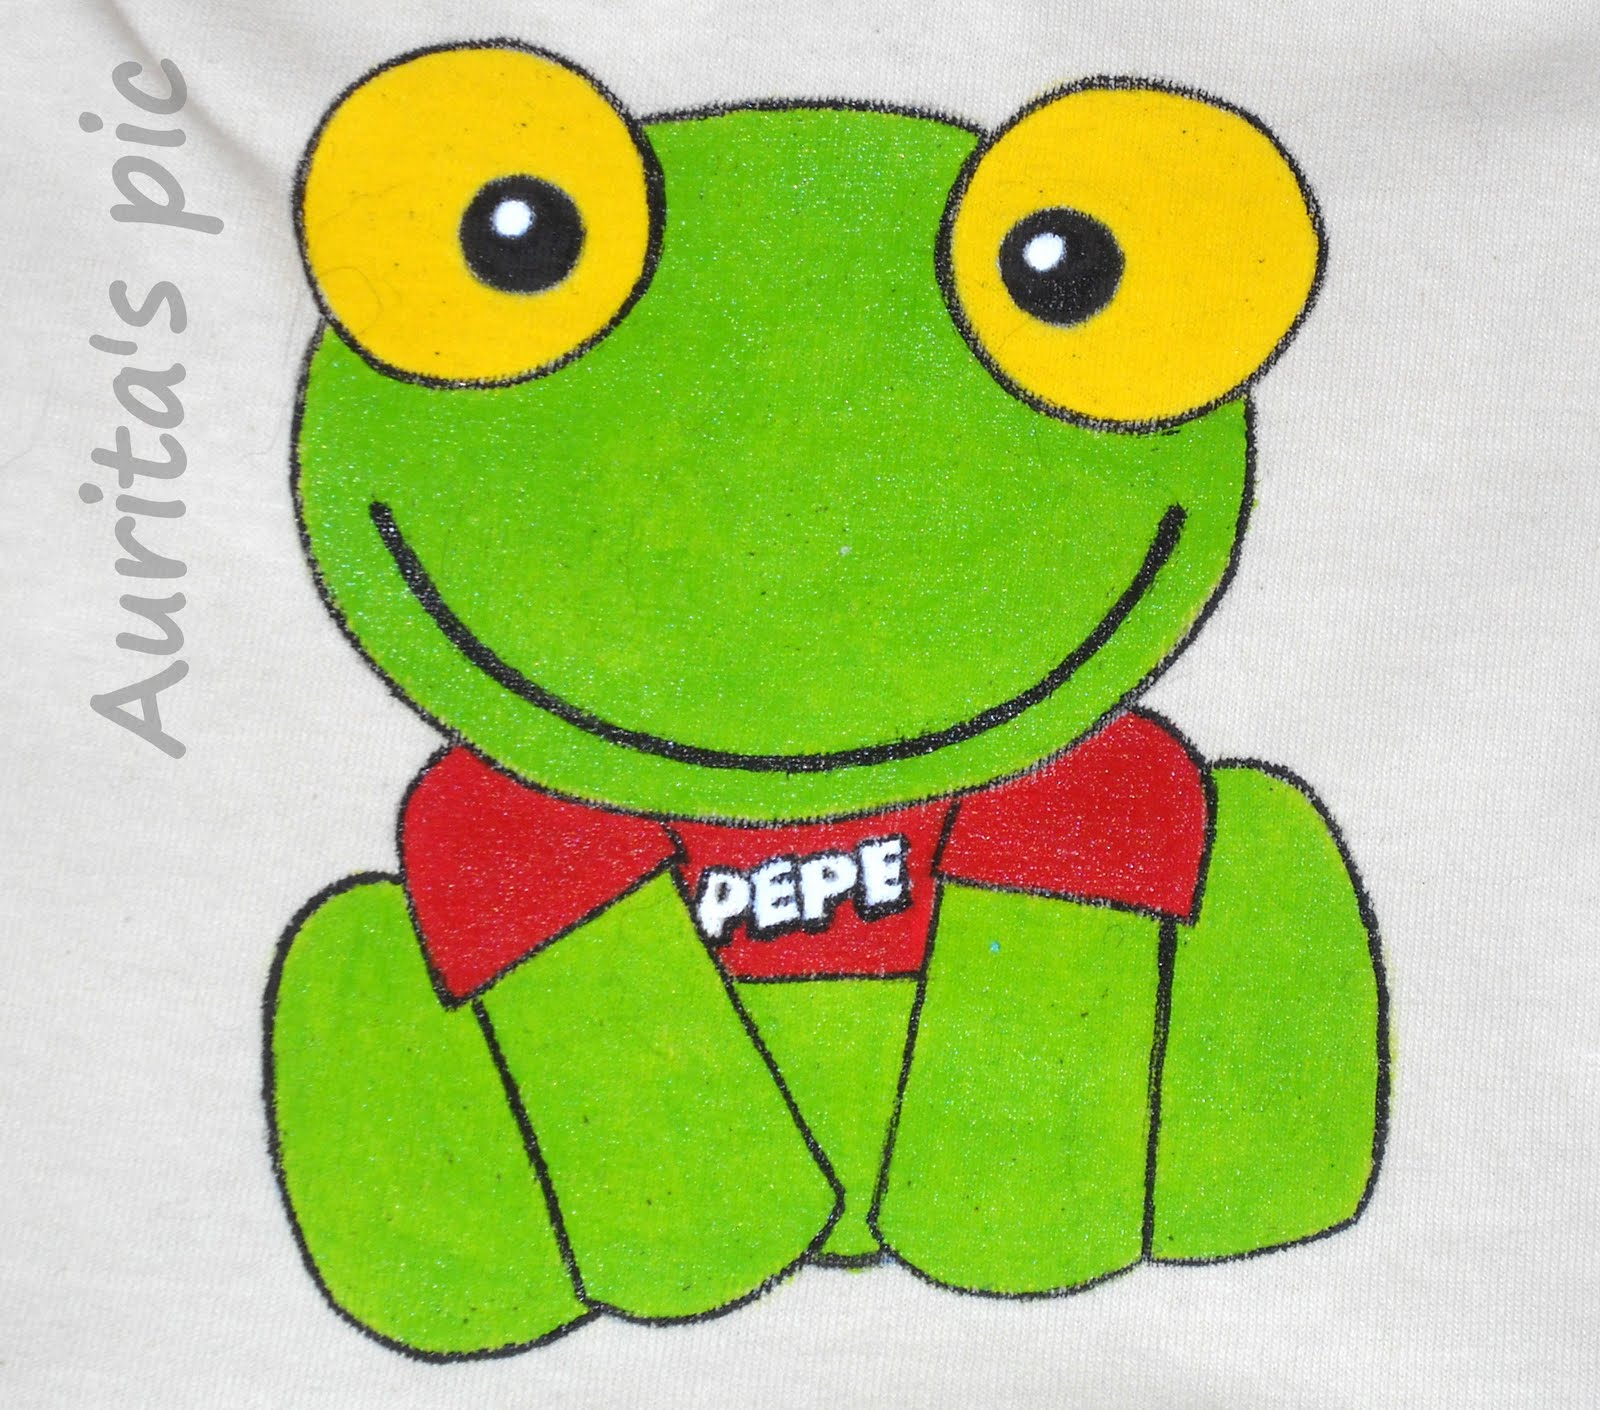 sapo pepe 5 - photo #3